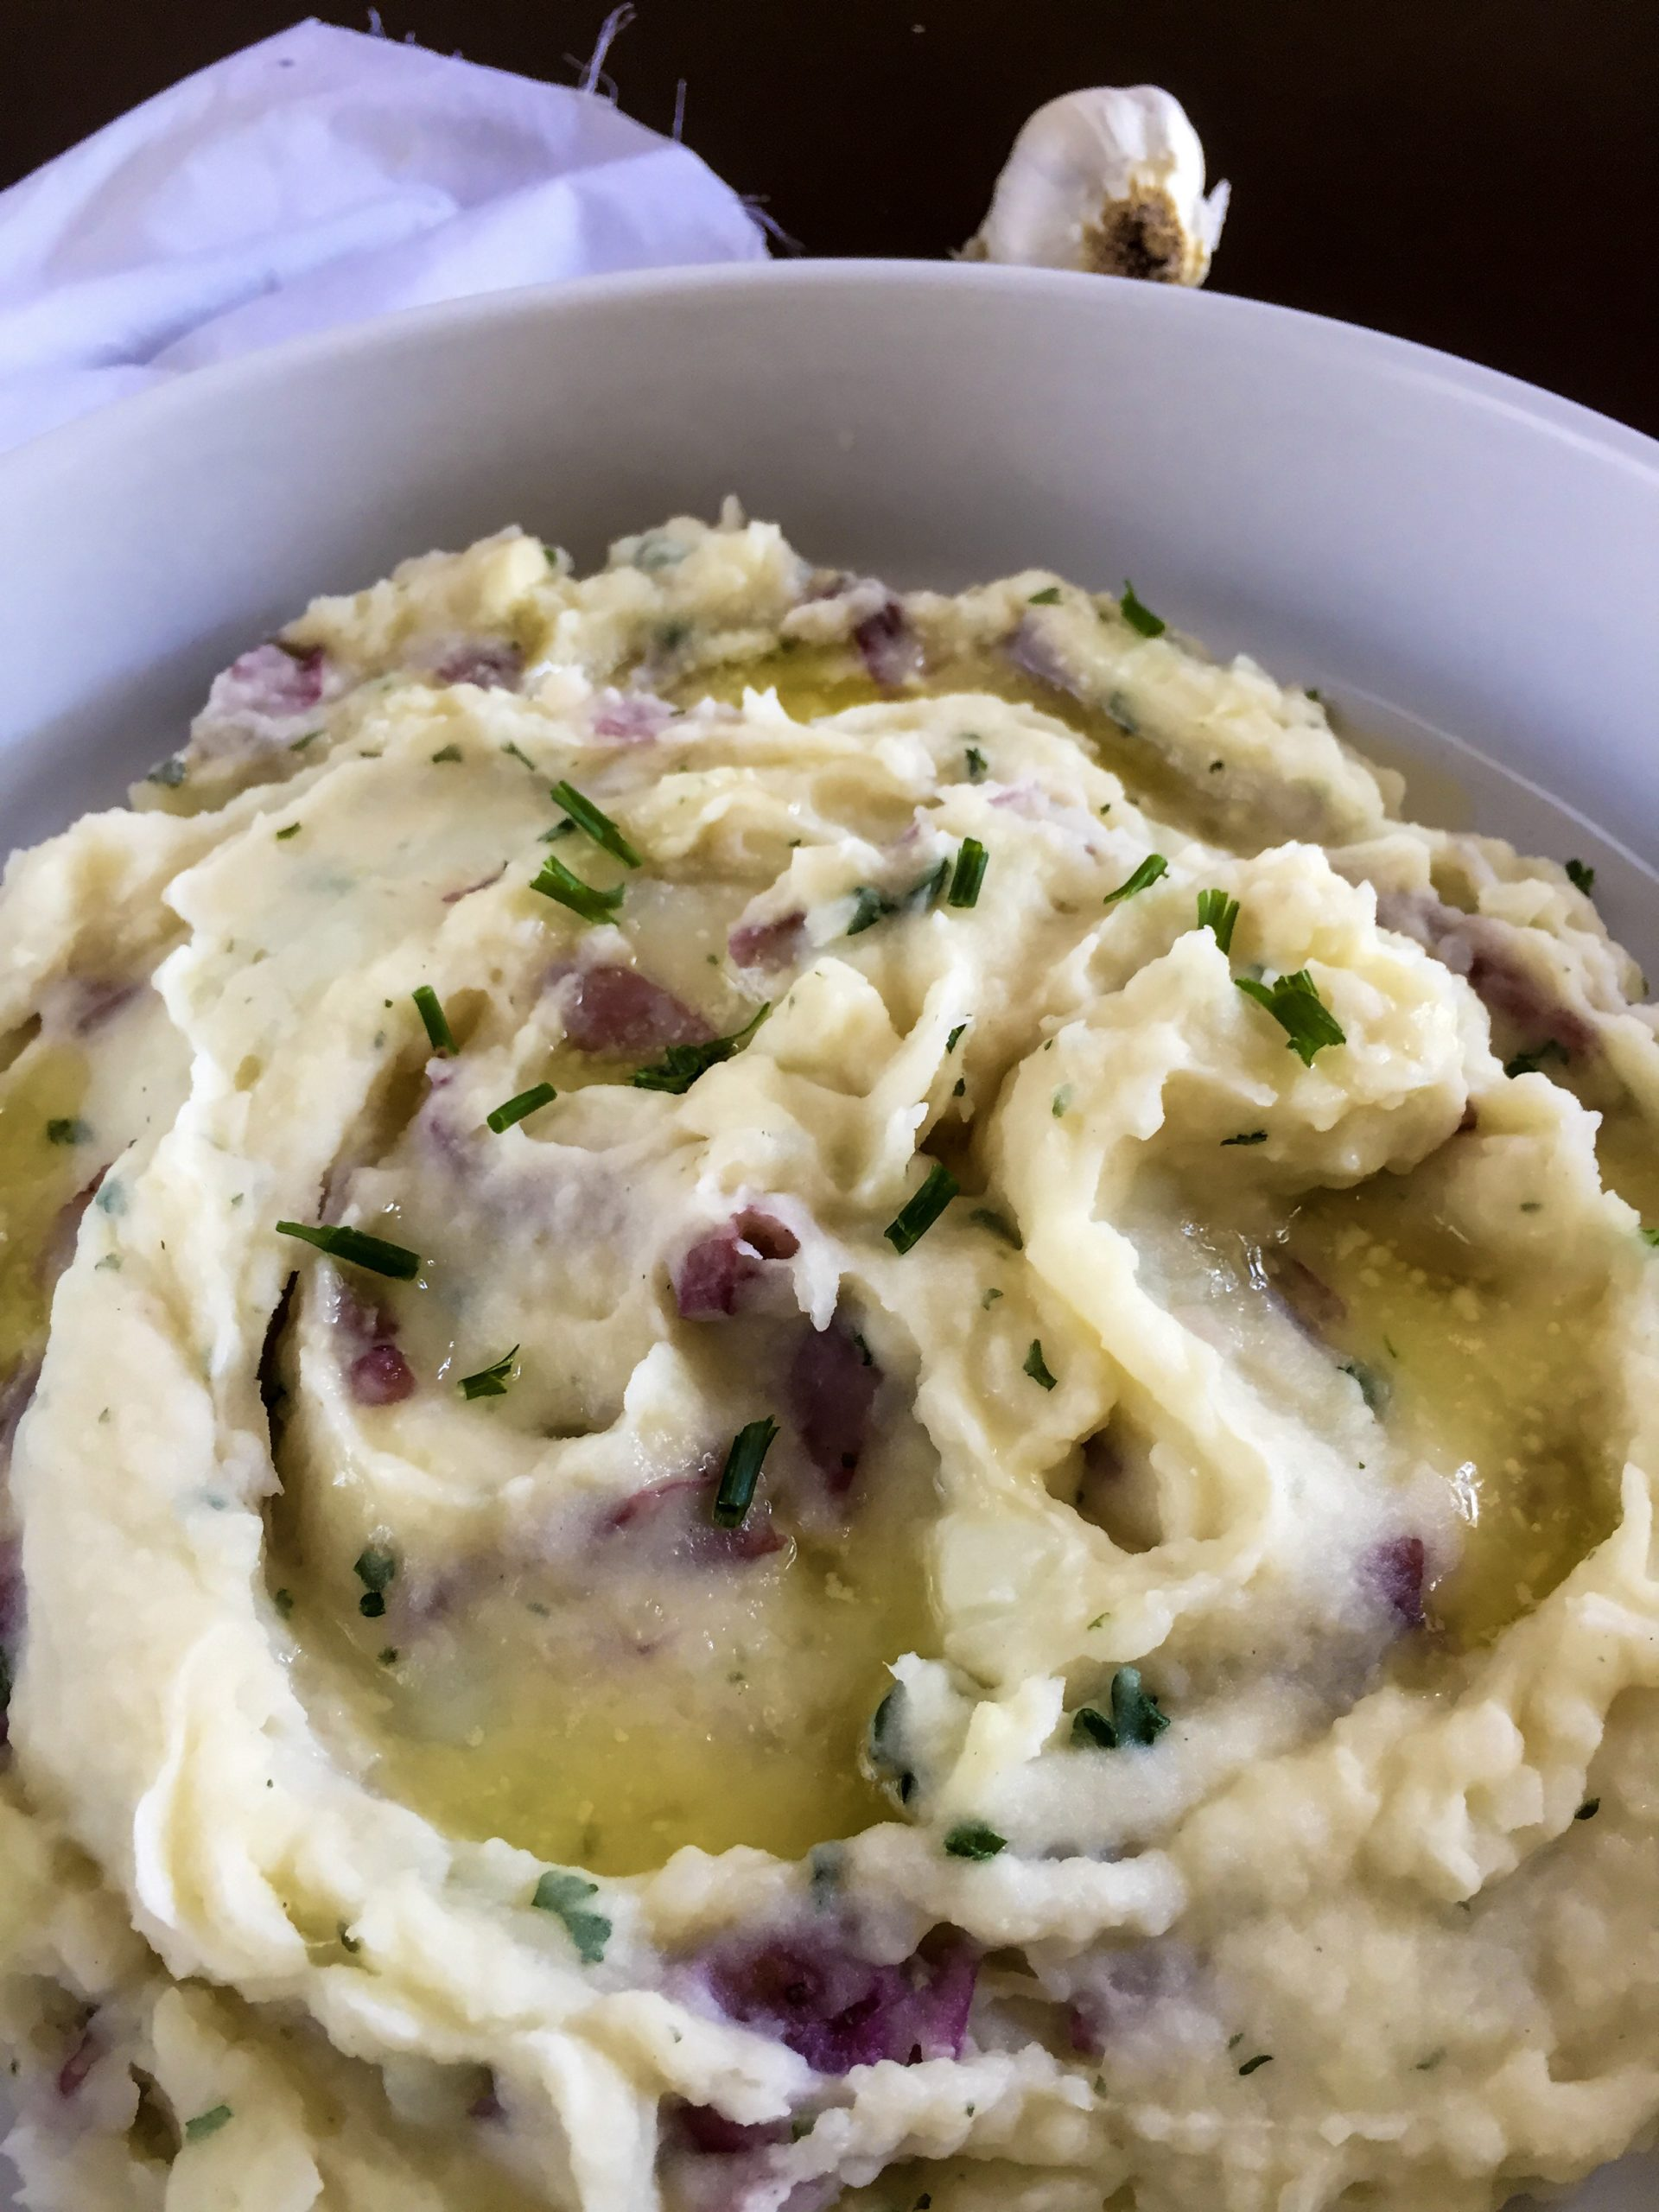 dish of whipped red mashed potatoes with pools of melted butter.